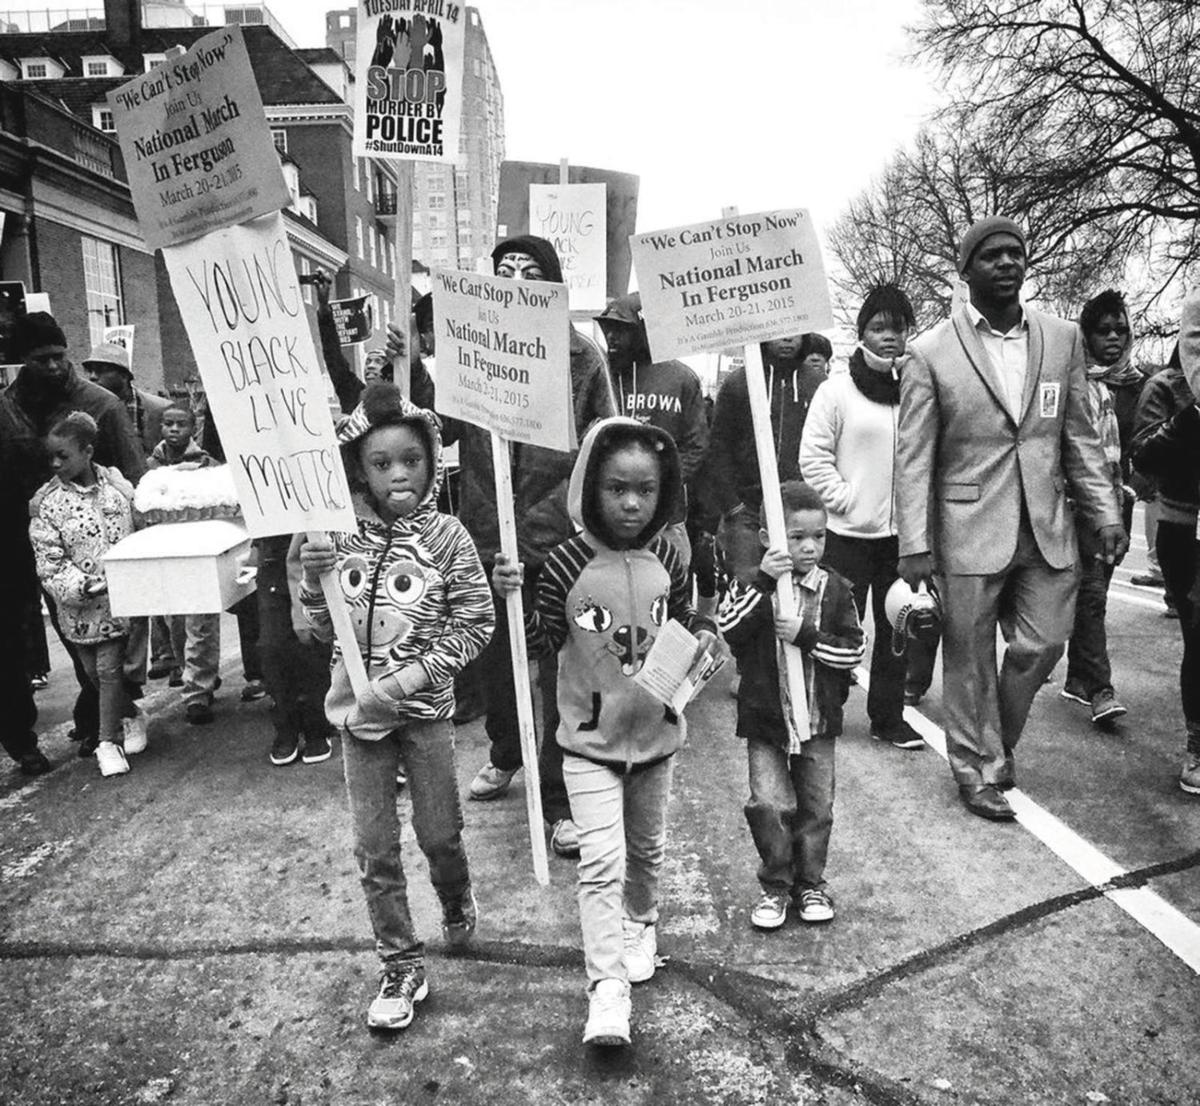 High Civil Rights 2 children carry protest signs in Ferguson